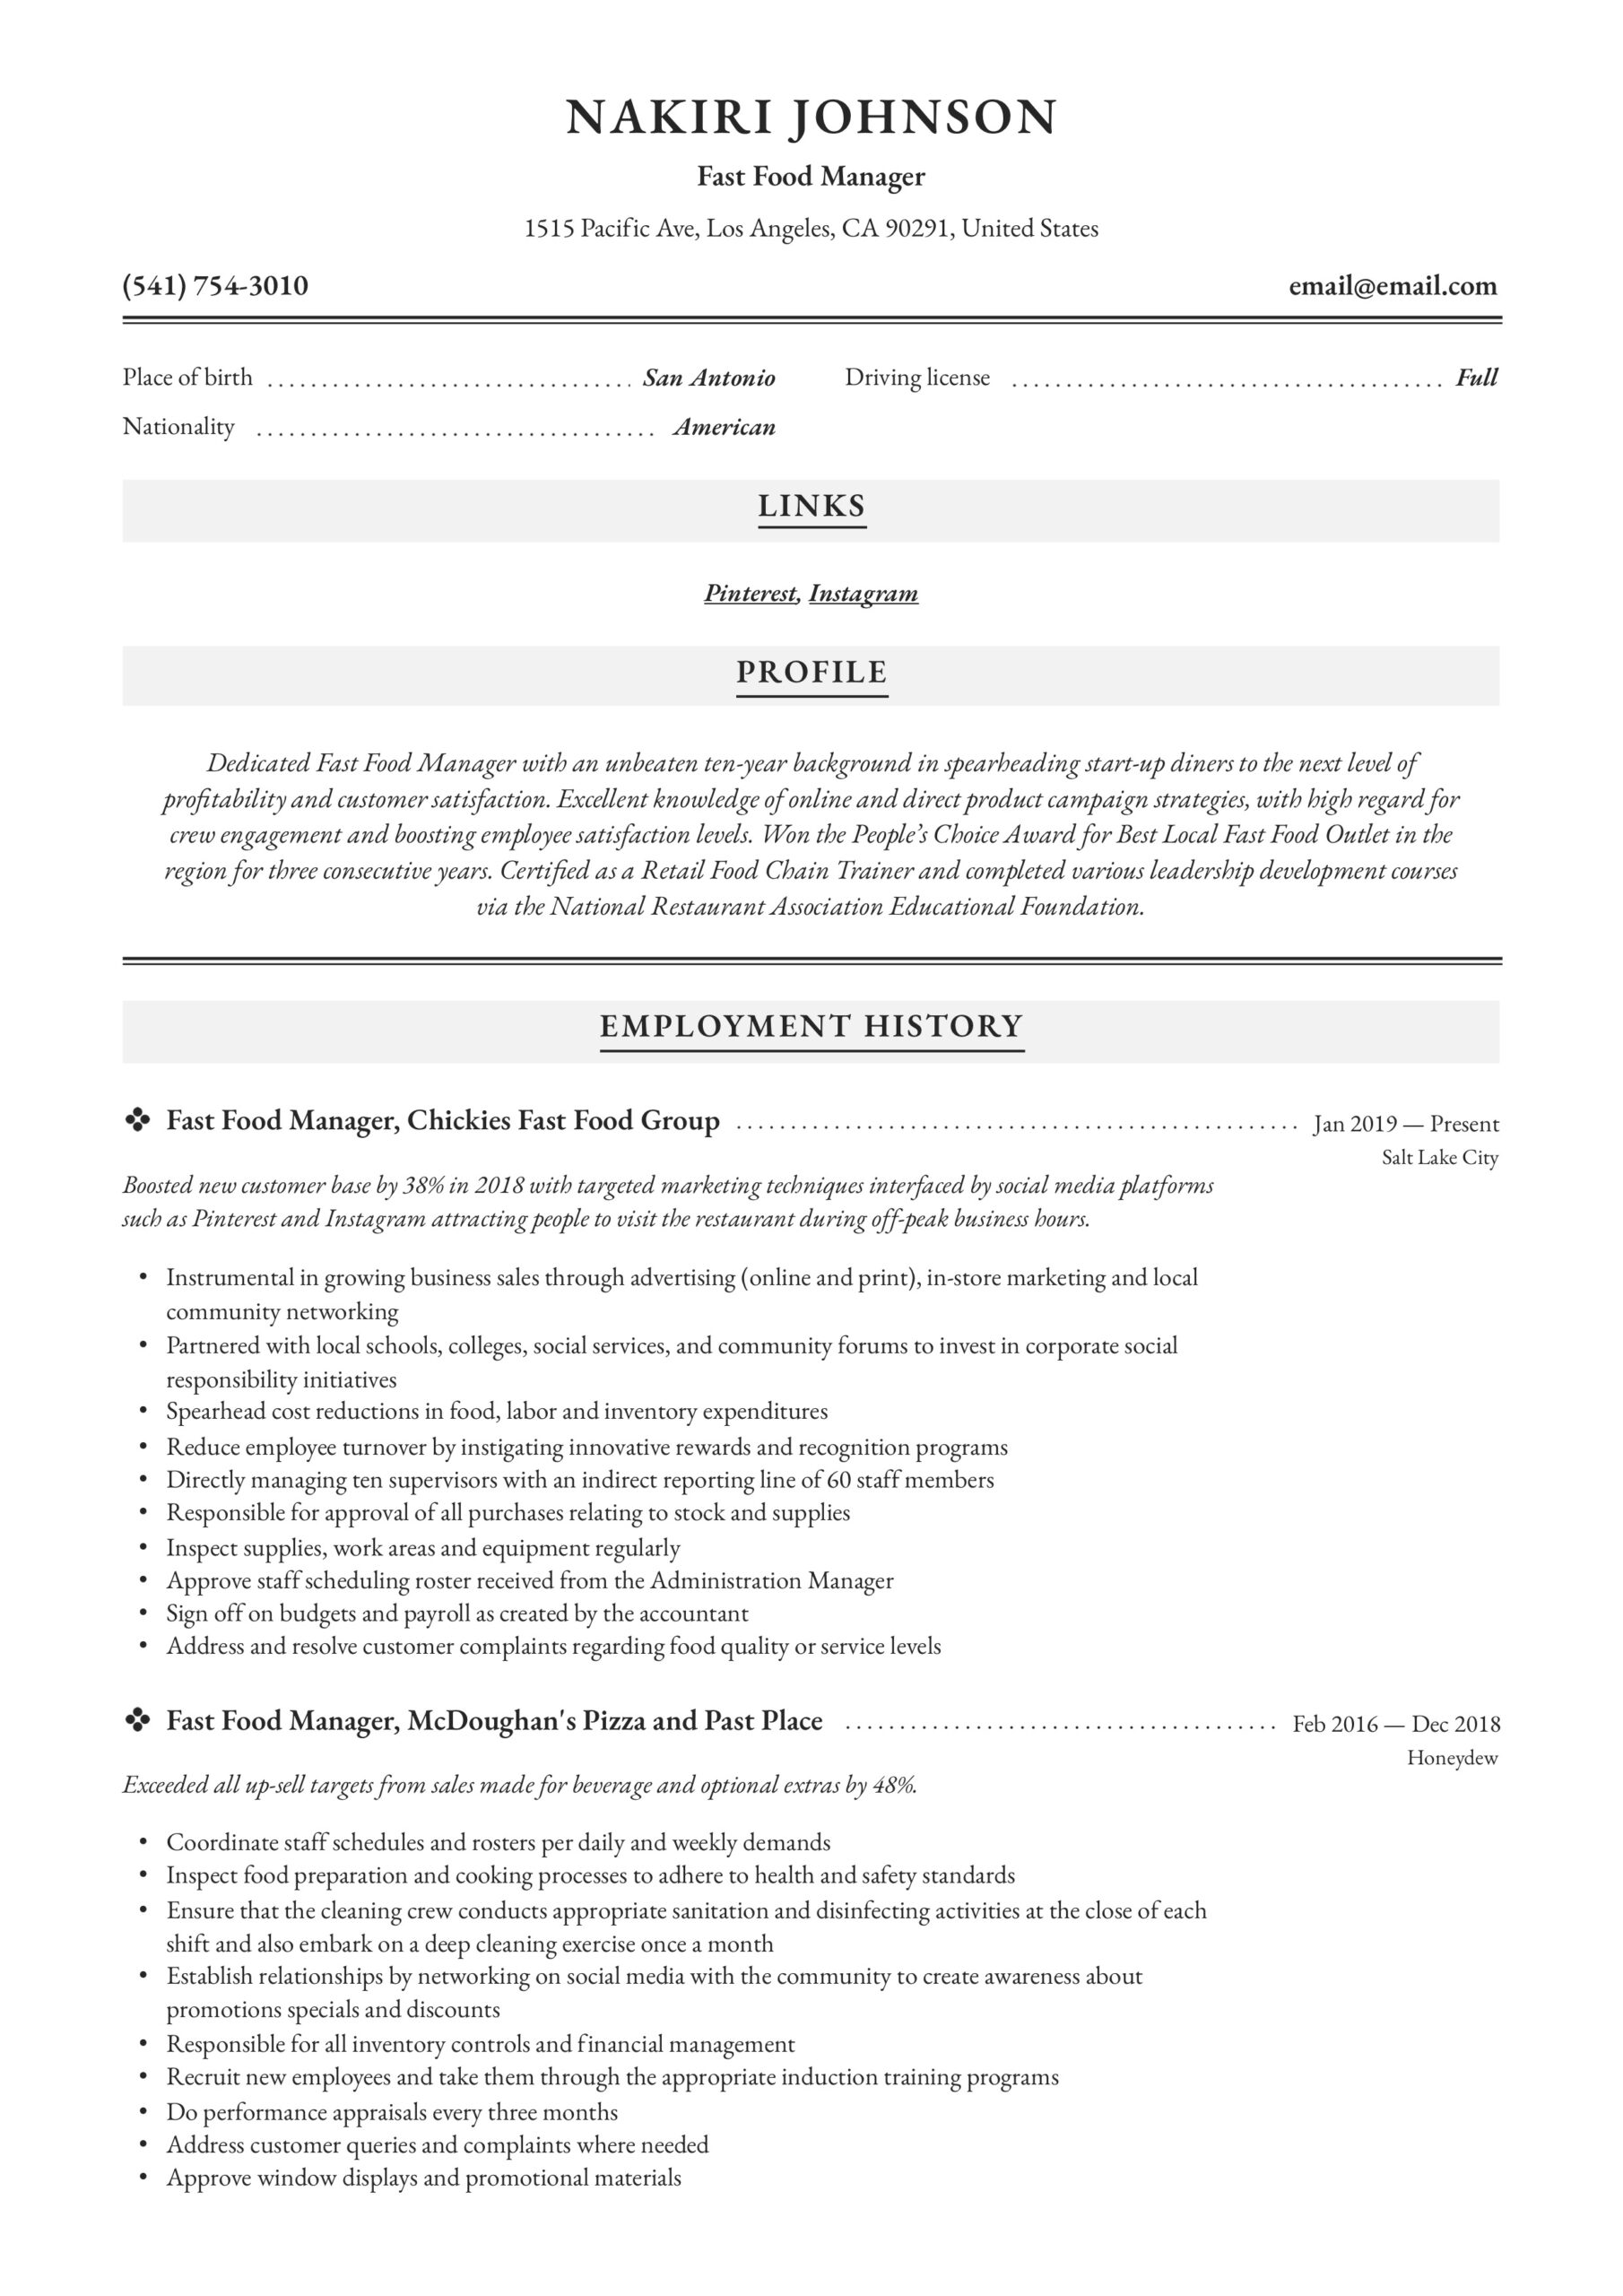 fast food manager resume writing guide examples worker elementary teacher cover letter Resume Fast Food Worker Resume